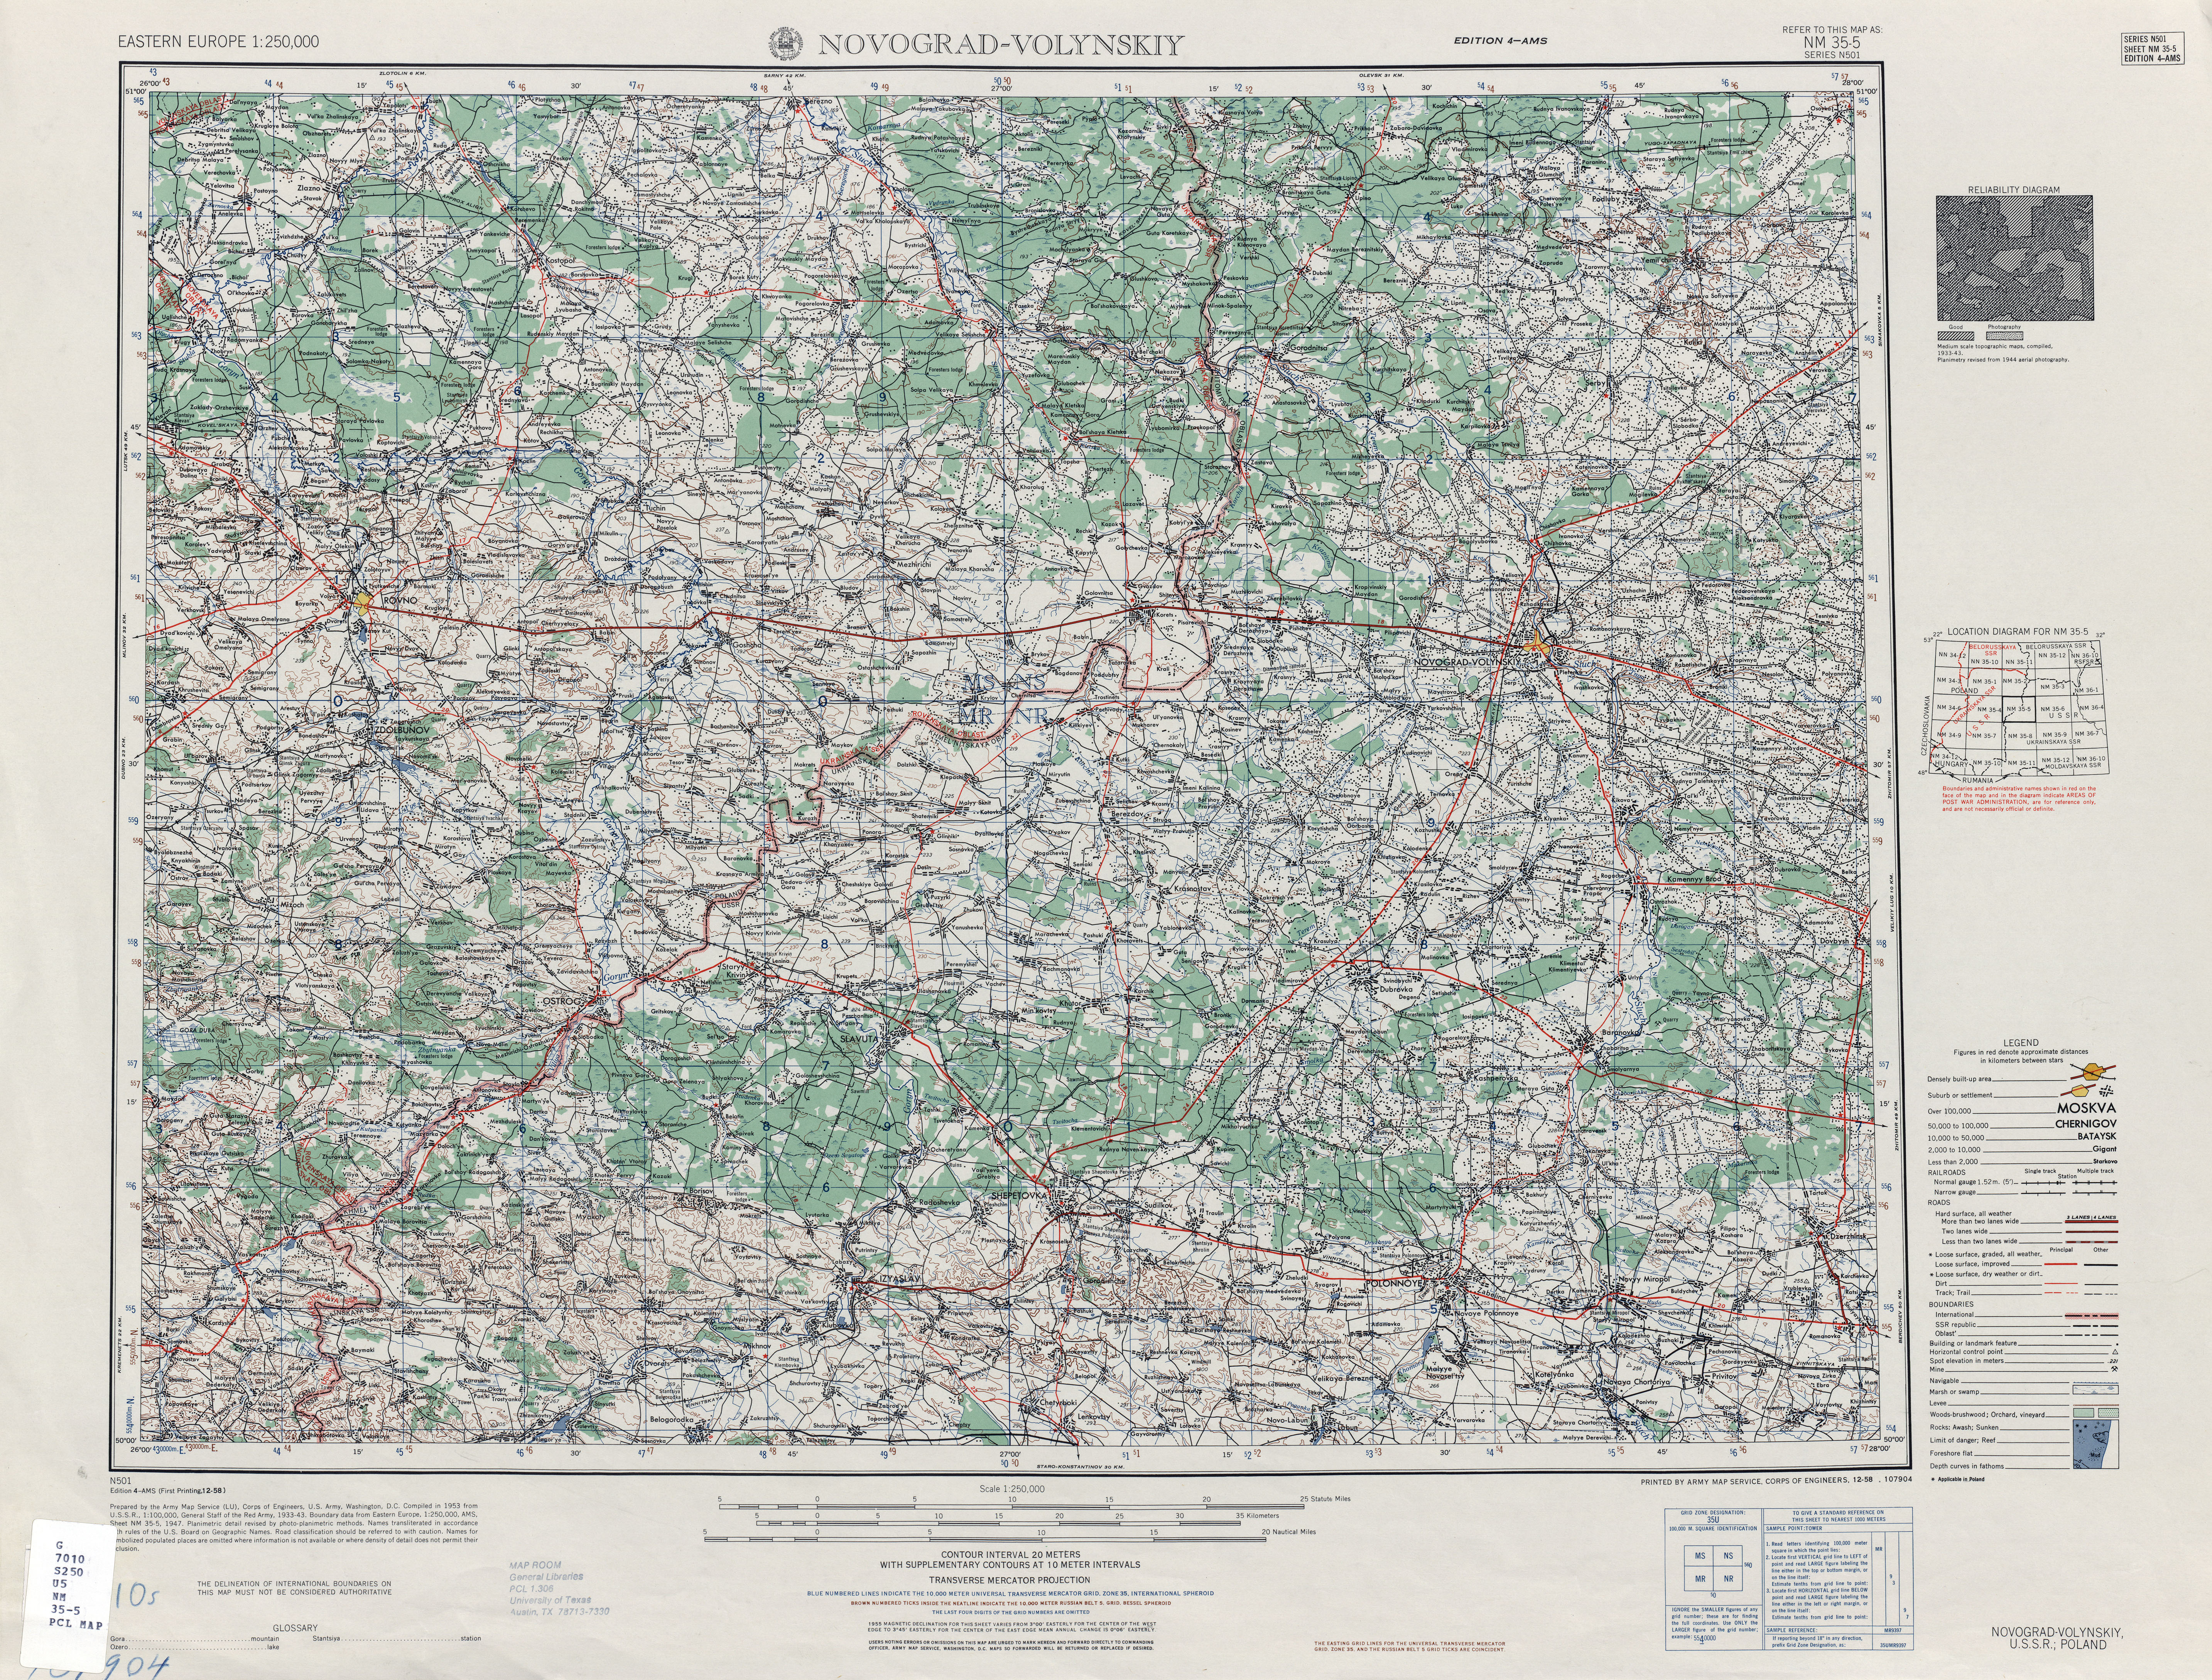 Eastern Europe Ams Topographic Maps Perry Castaneda Map Collection